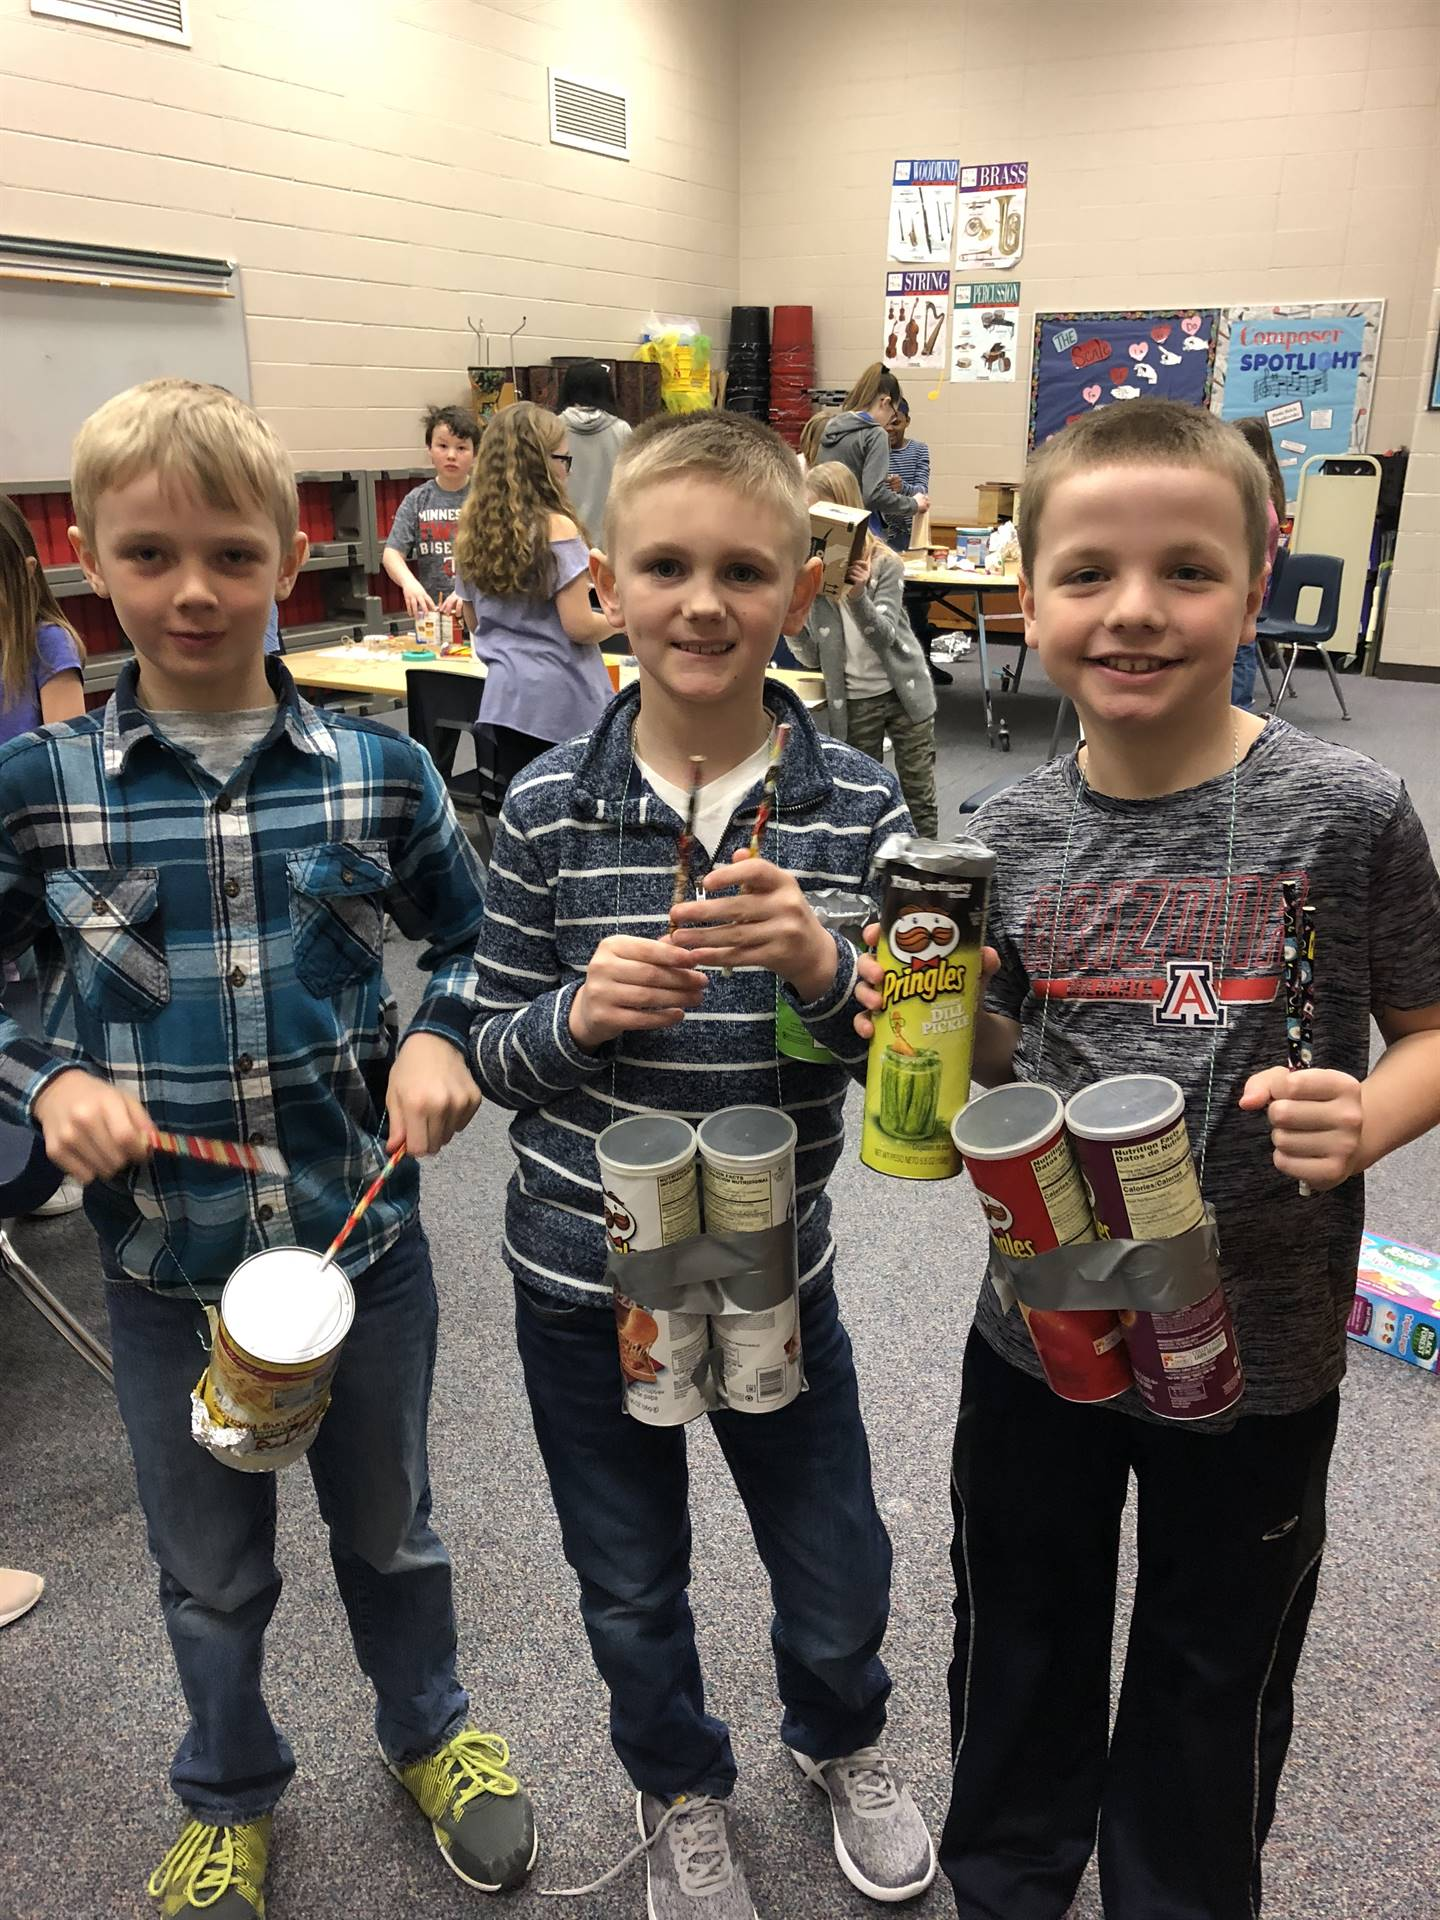 3 students posing for picture to show their homemade instruments